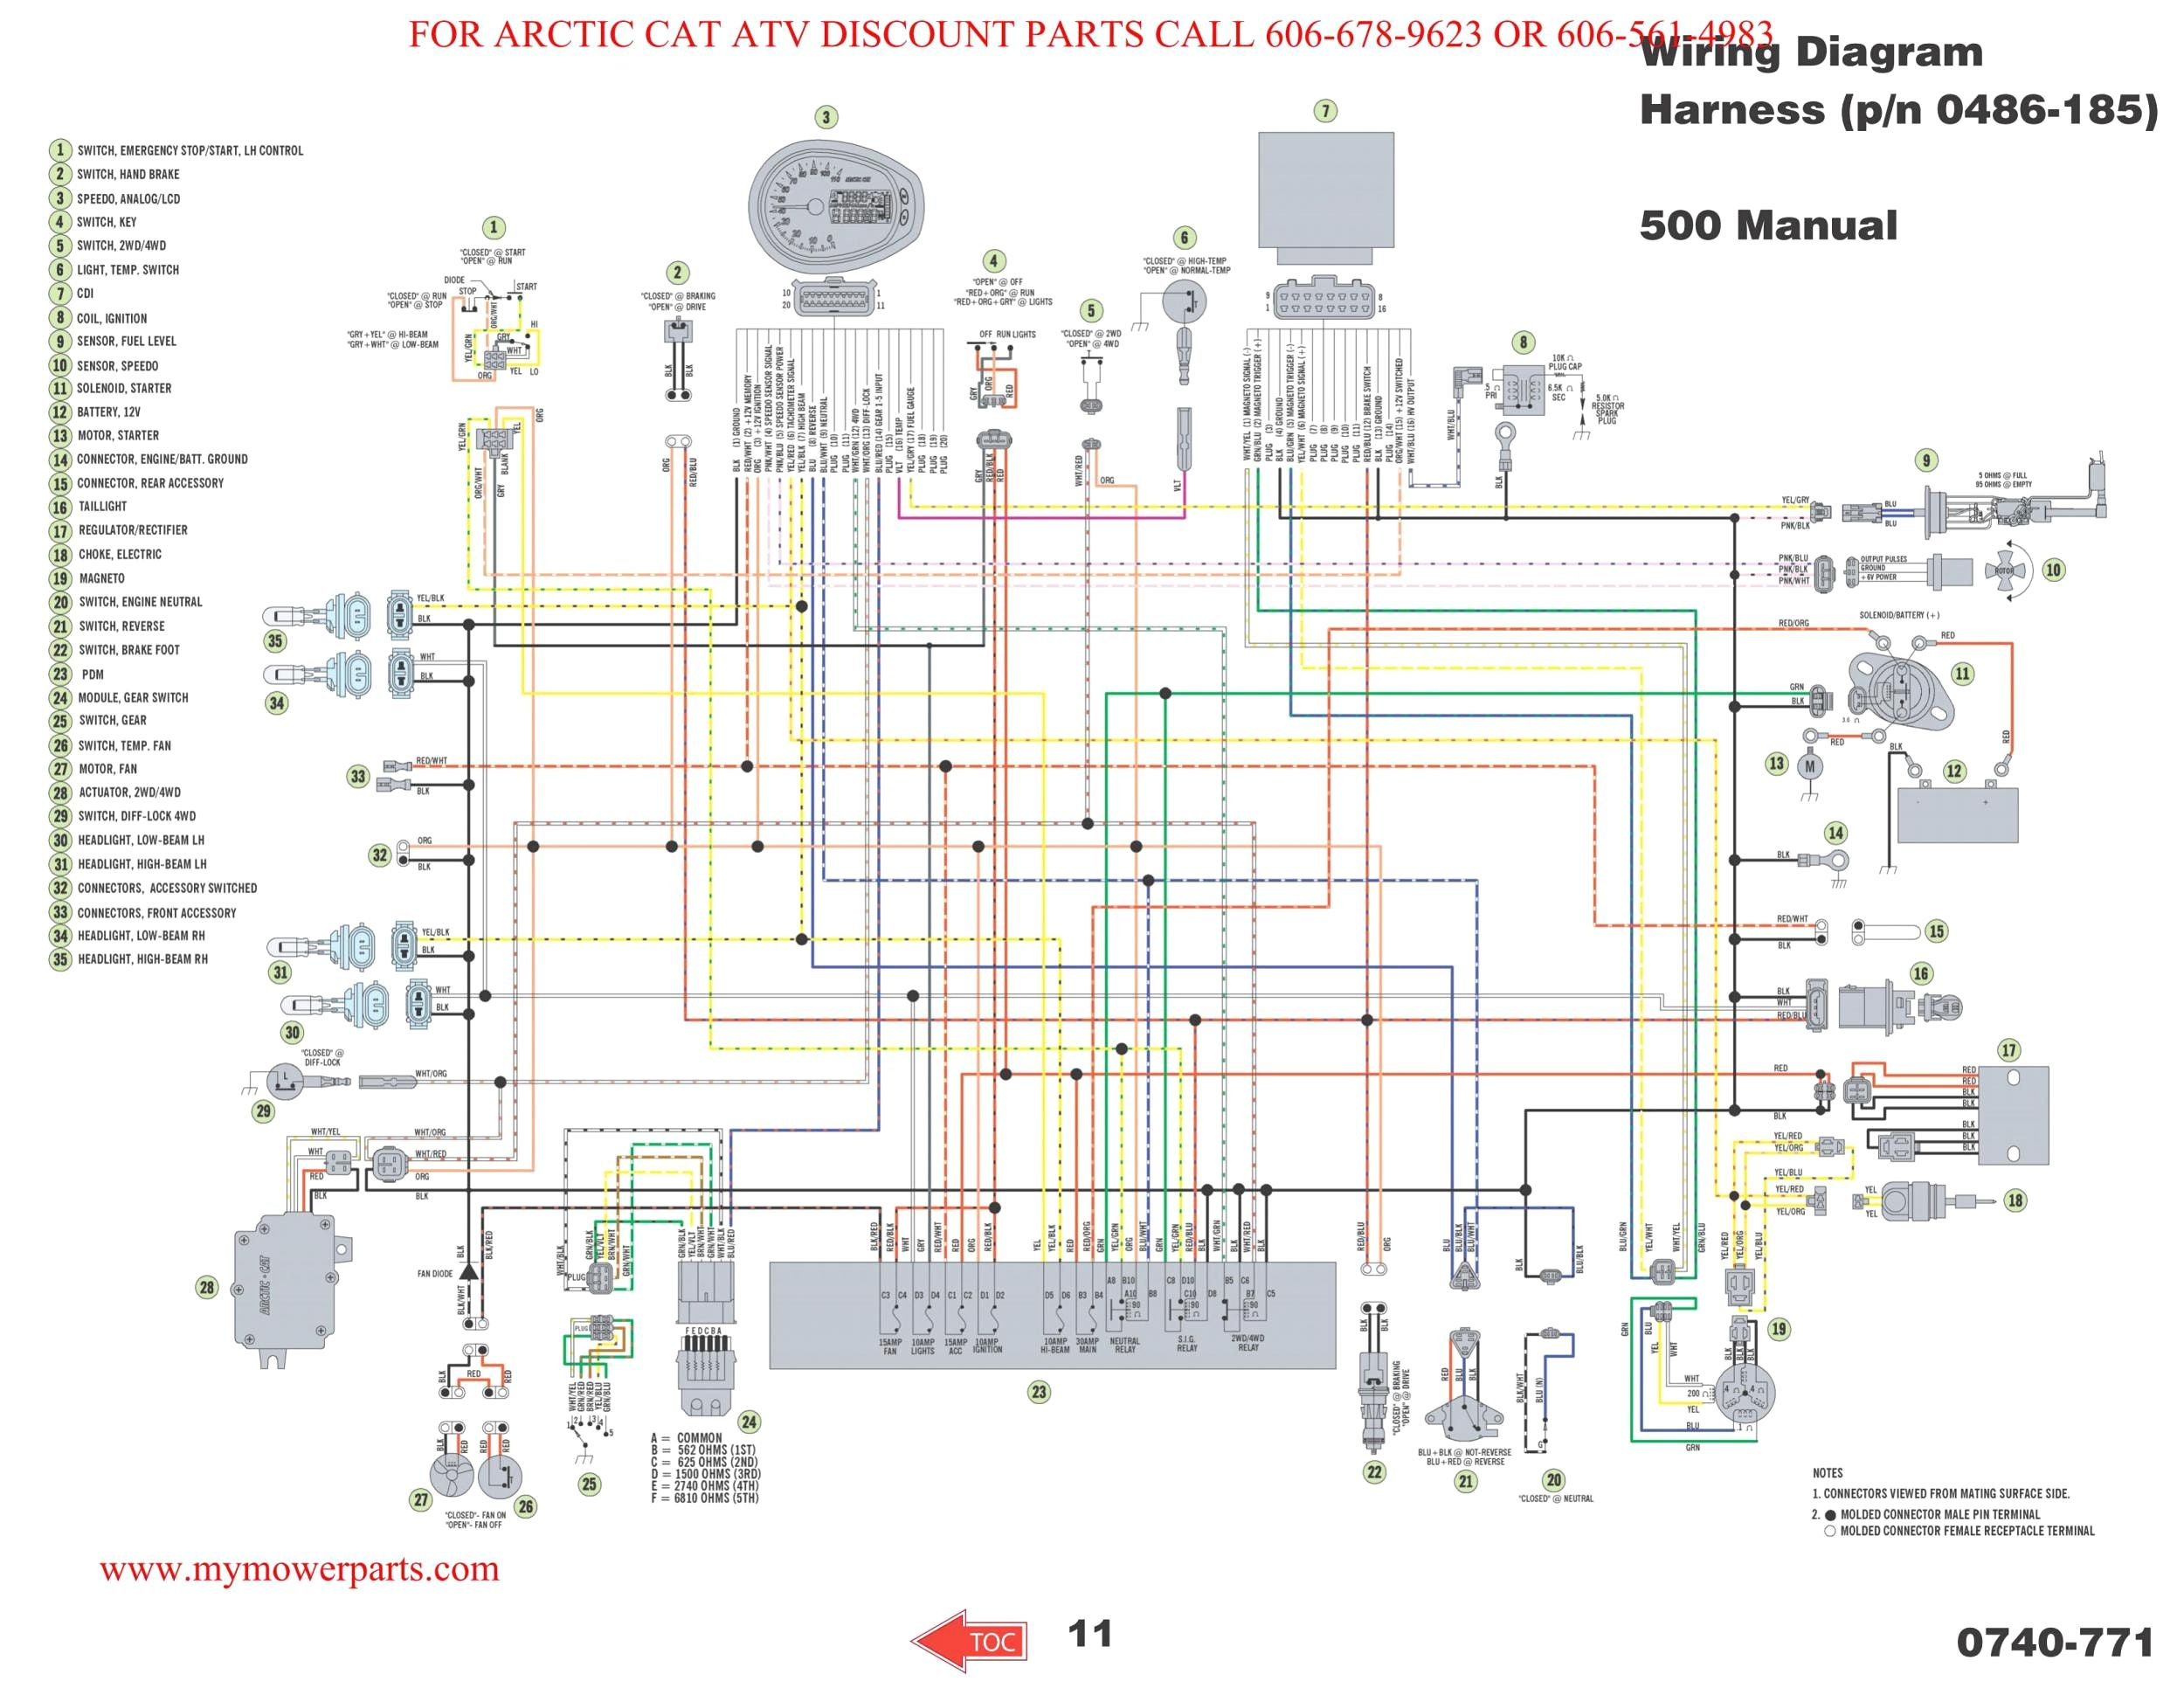 Polaris Ranger 500 Wiring Diagram In 2020 Polaris Ranger Diagram Ranger